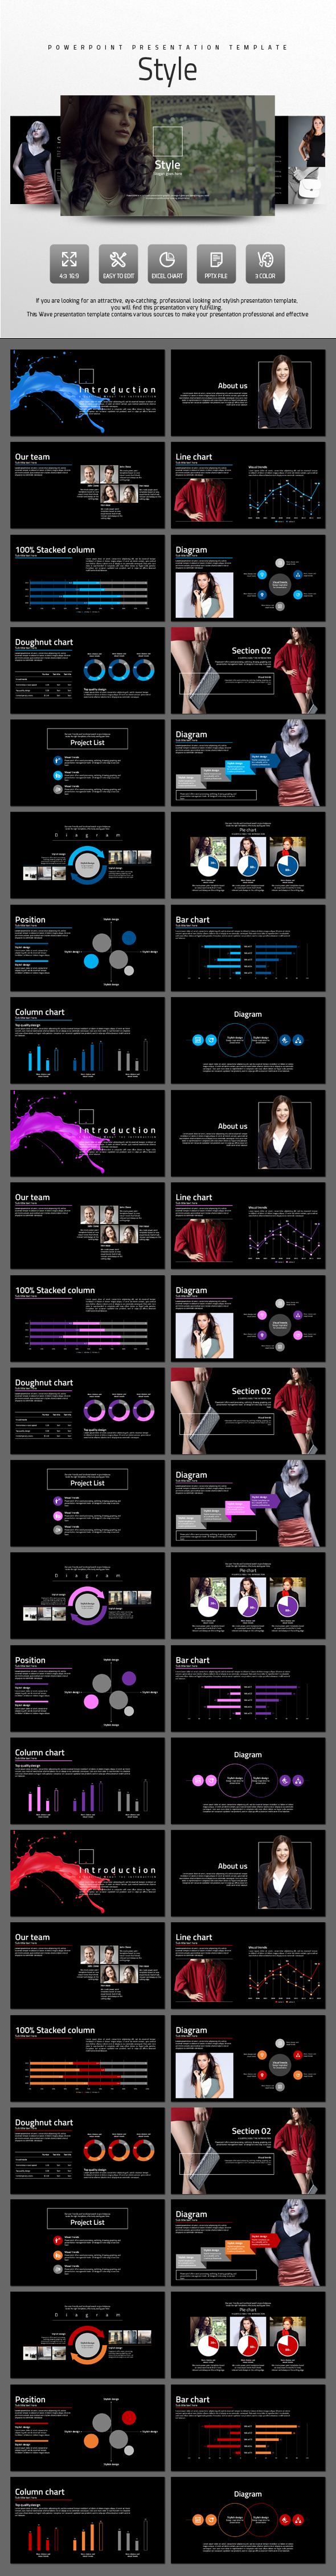 Style - Abstract PowerPoint Templates